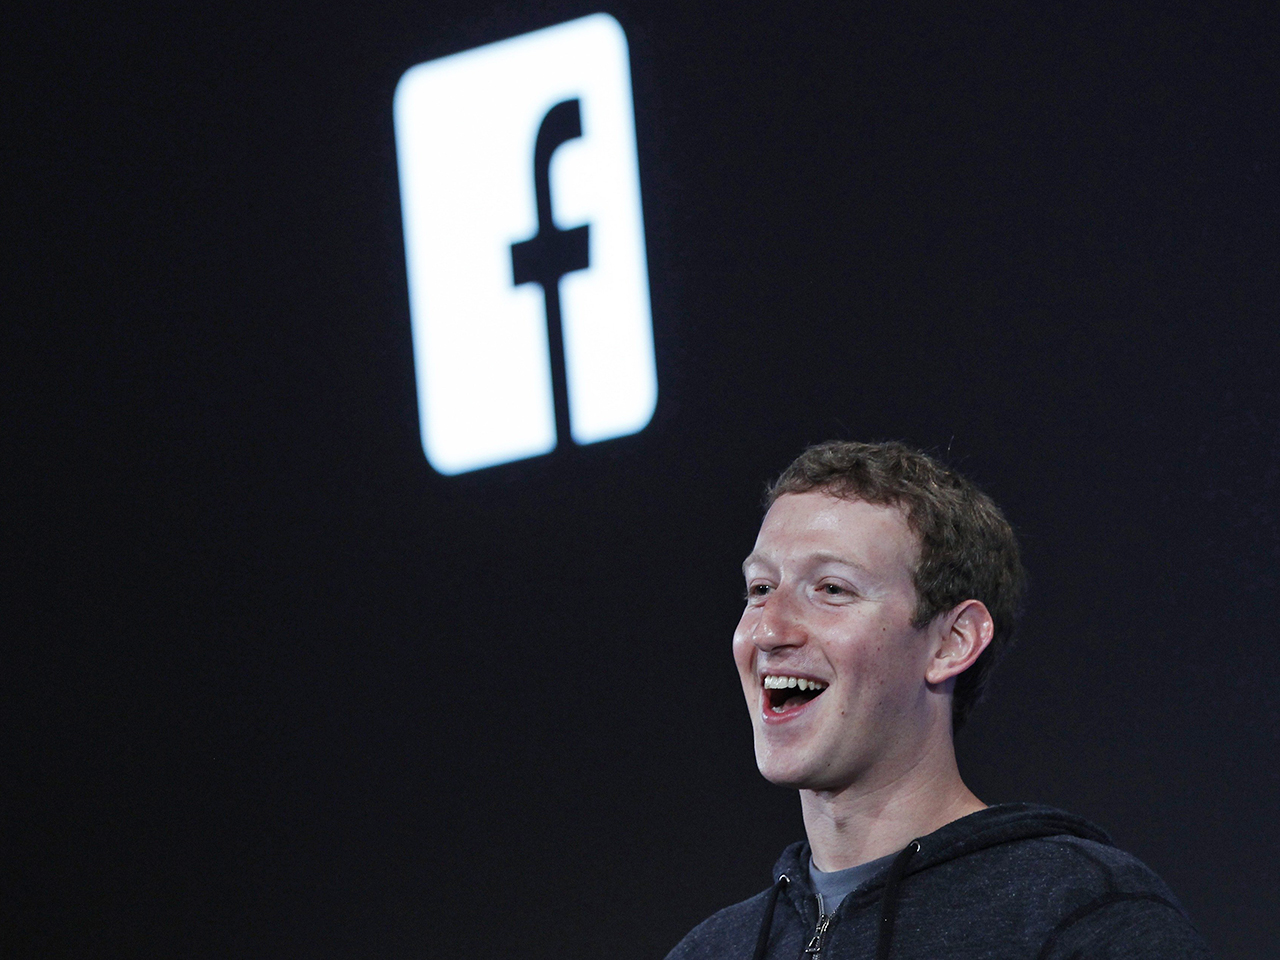 Mark Zuckerberg, Facebook's co-founder and chief executive